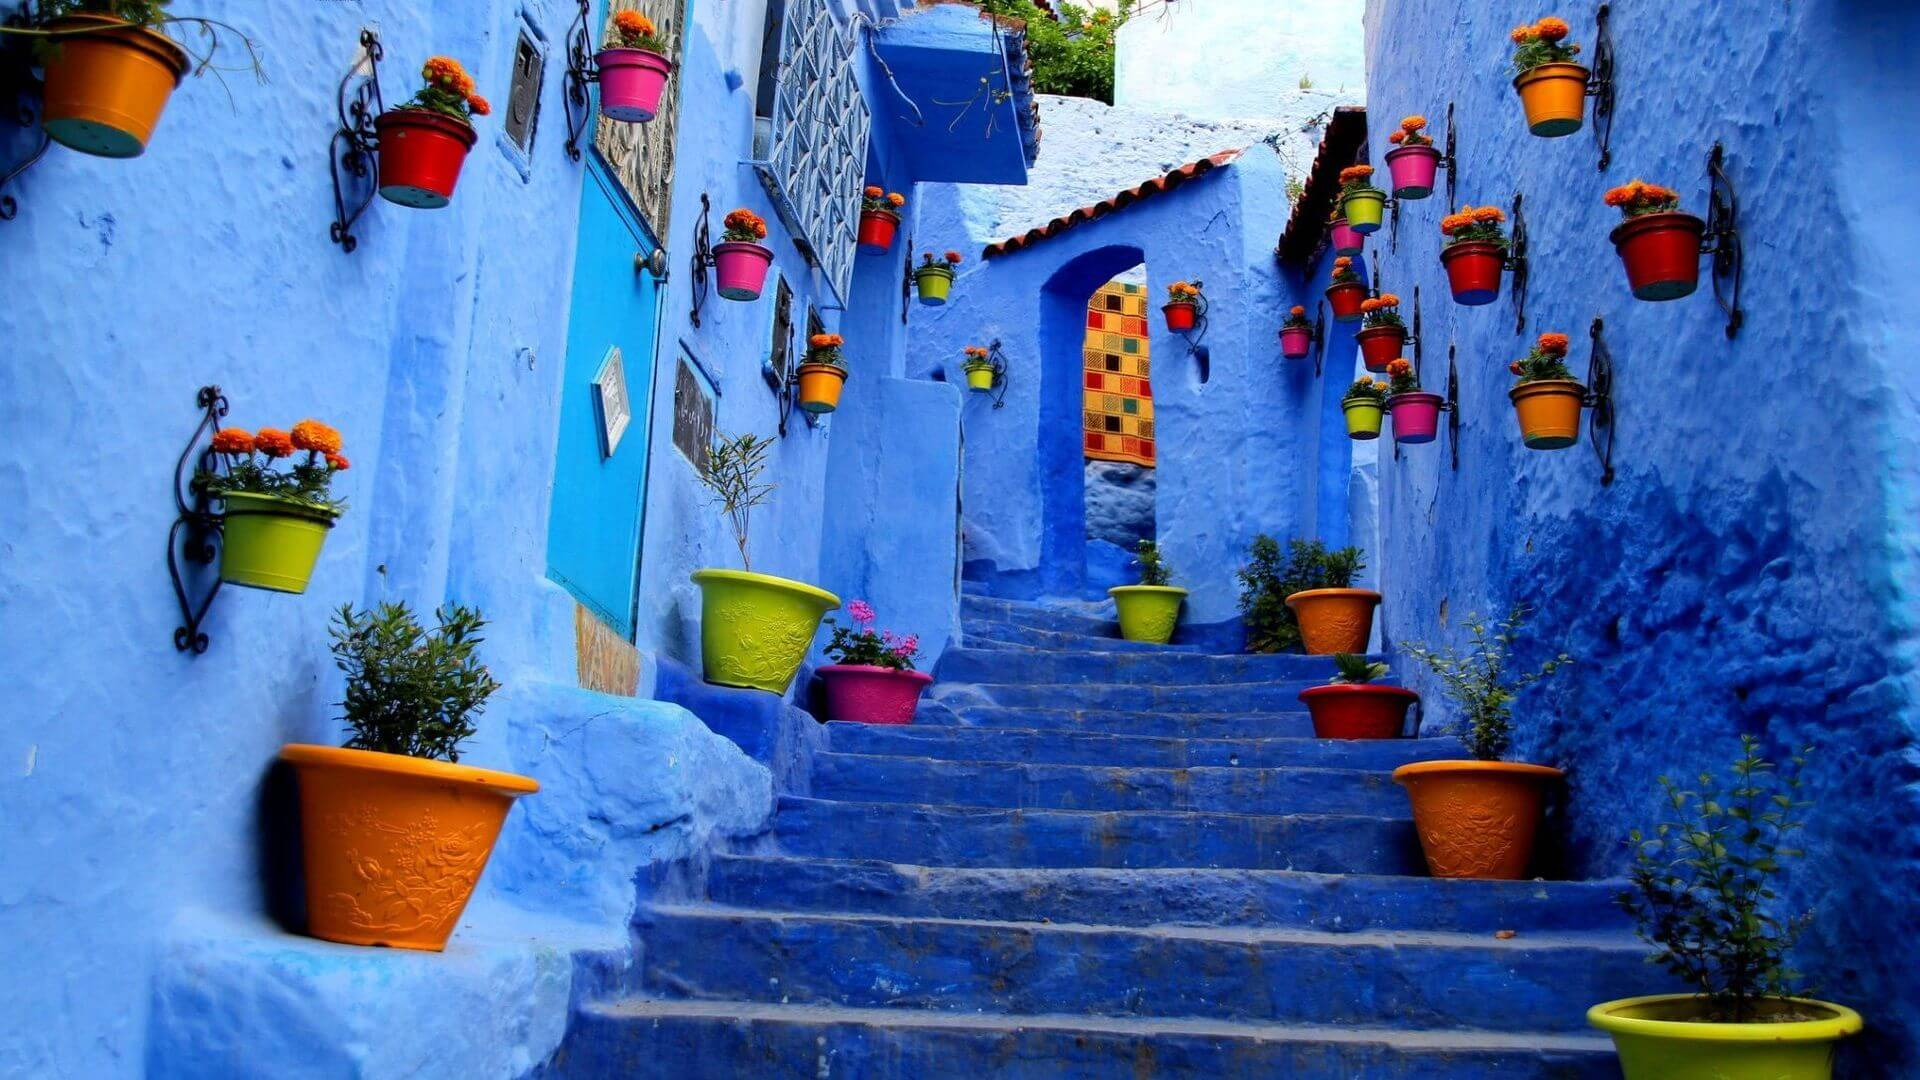 Morocco Interesting facts